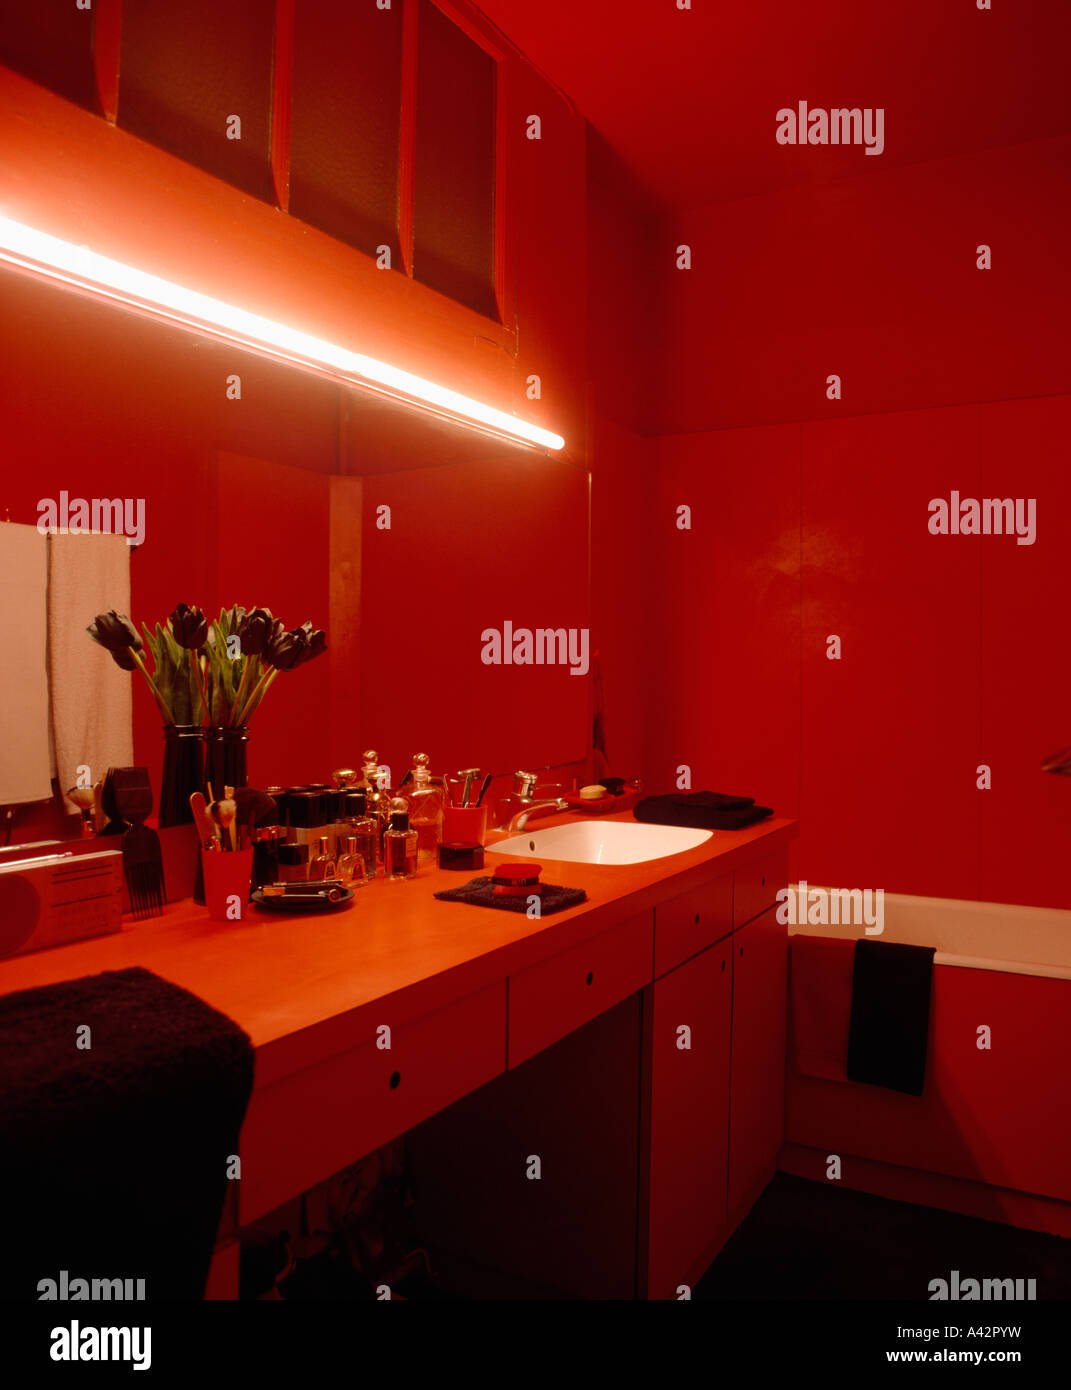 Merveilleux Neon Light Above Sink Unit In Red Bathroom Stock Photo ...